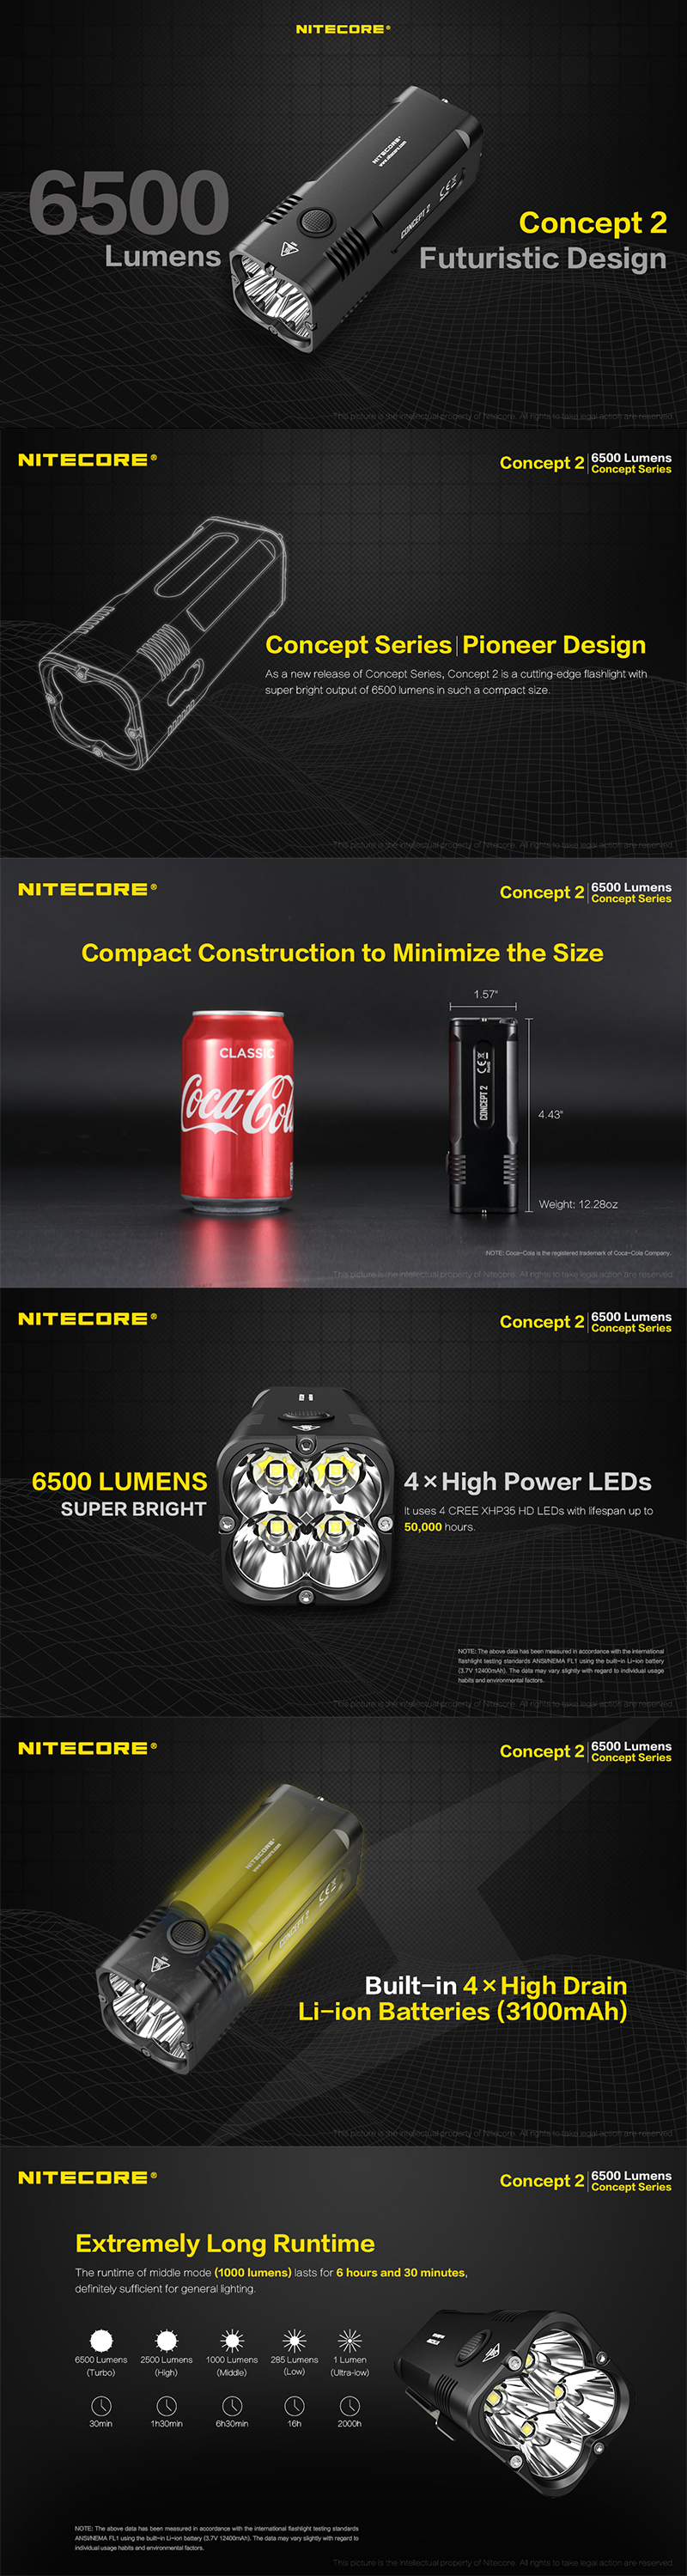 Nitecore CONCEPT 2 4 x XHP35 Flashlight HD 6500LM 8Modes Dimming USB Rechargeable Long-range Super Bright Portable LED Flashlight